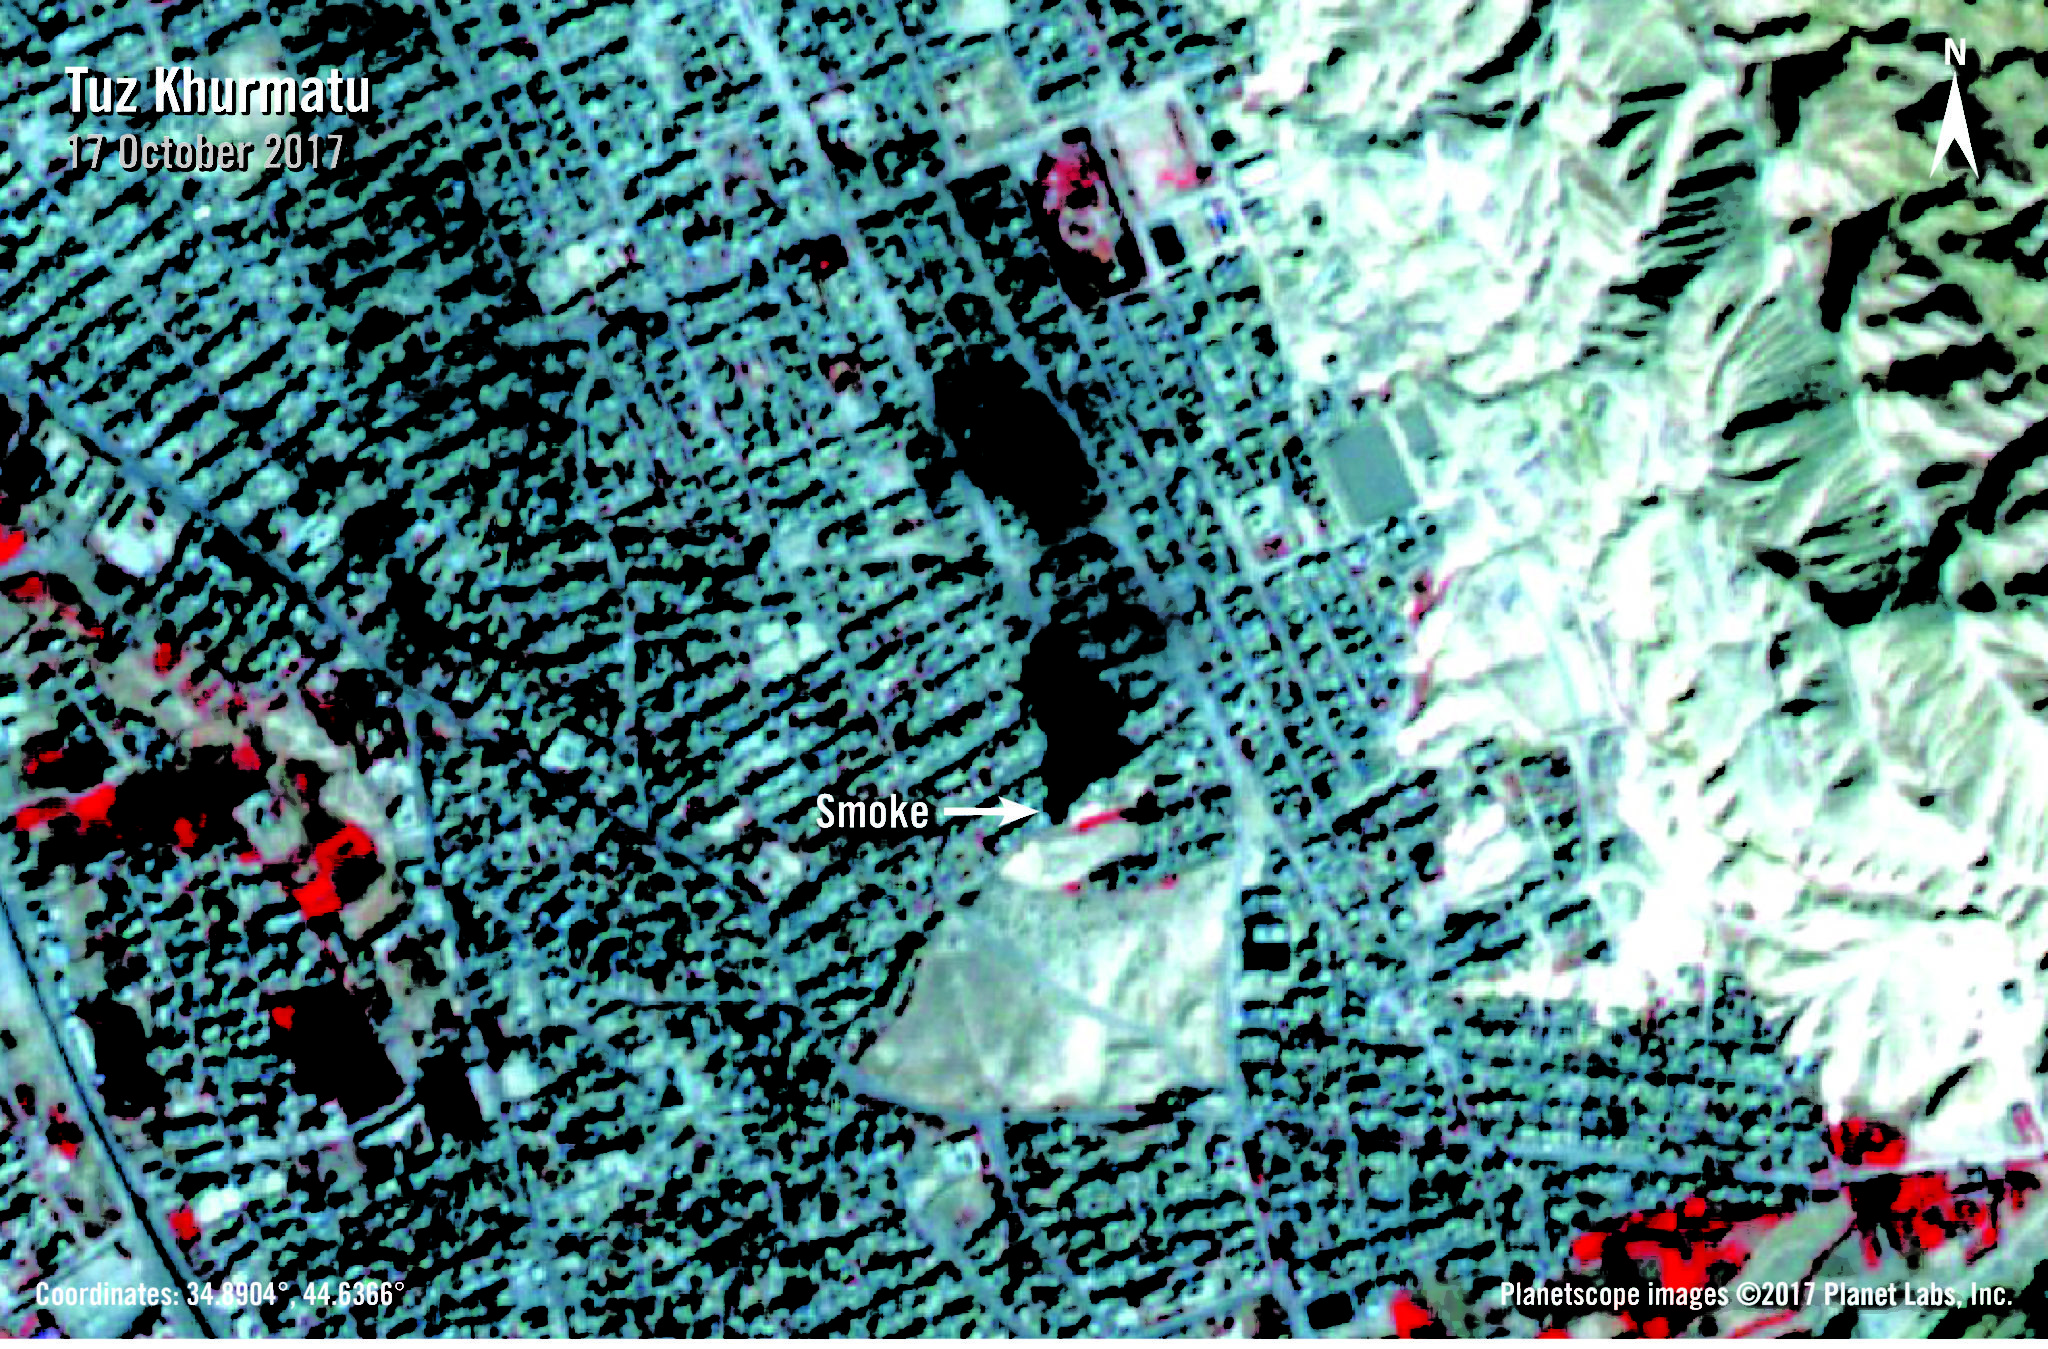 Iraq: Fresh evidence that tens of thousands forced to flee Tuz Khurmatu amid indiscriminate attacks, lootings and arson